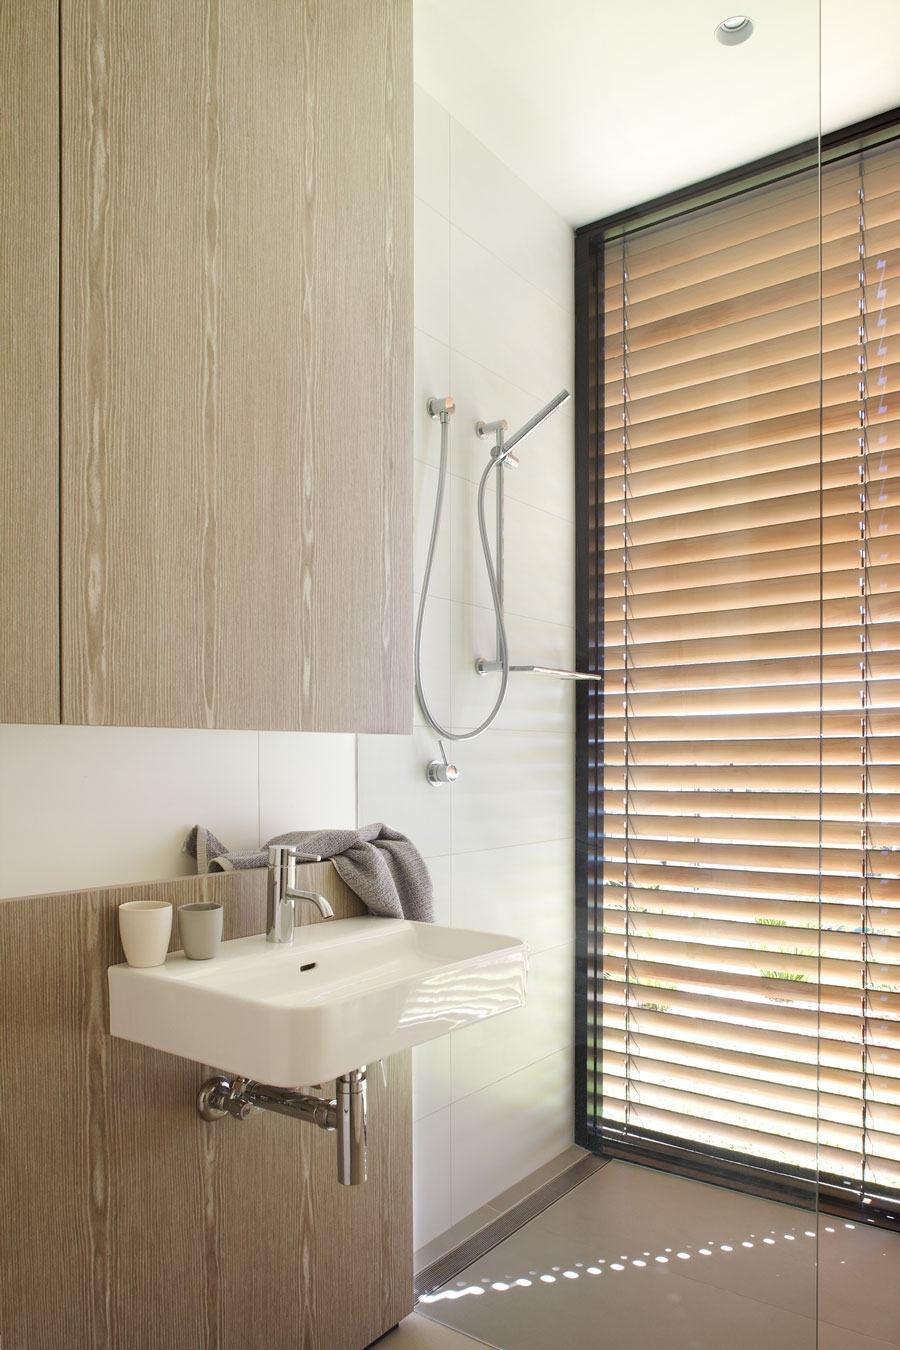 Wooden blinds offer ample shade